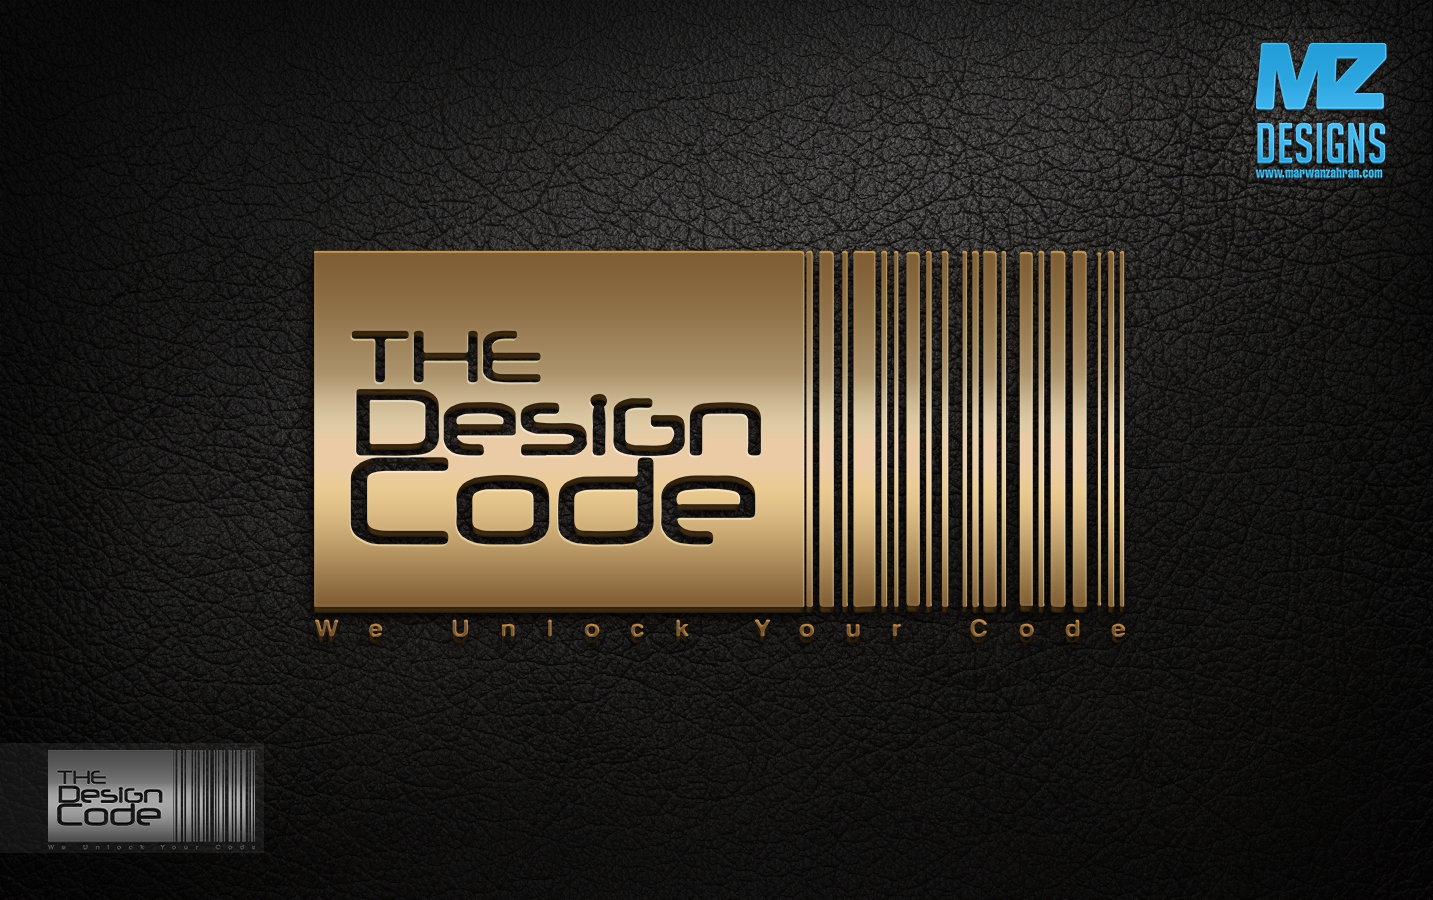 Interior design company logo by marwanzahran on deviantart for The interior design firm